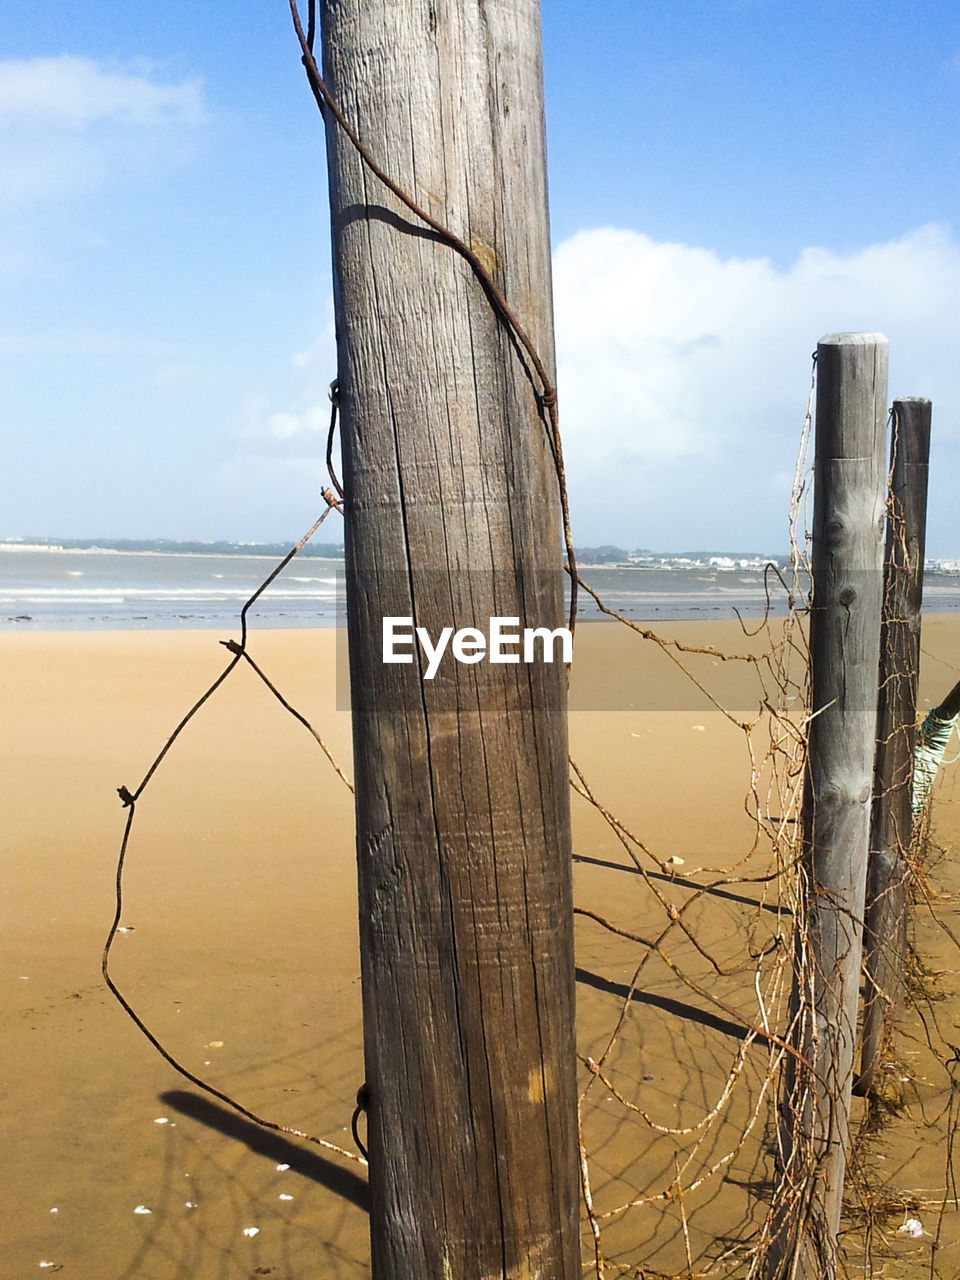 sky, sea, land, water, beach, wood - material, nature, scenics - nature, horizon over water, horizon, cloud - sky, tranquility, day, beauty in nature, tree, trunk, tree trunk, fence, no people, outdoors, wooden post, post, driftwood